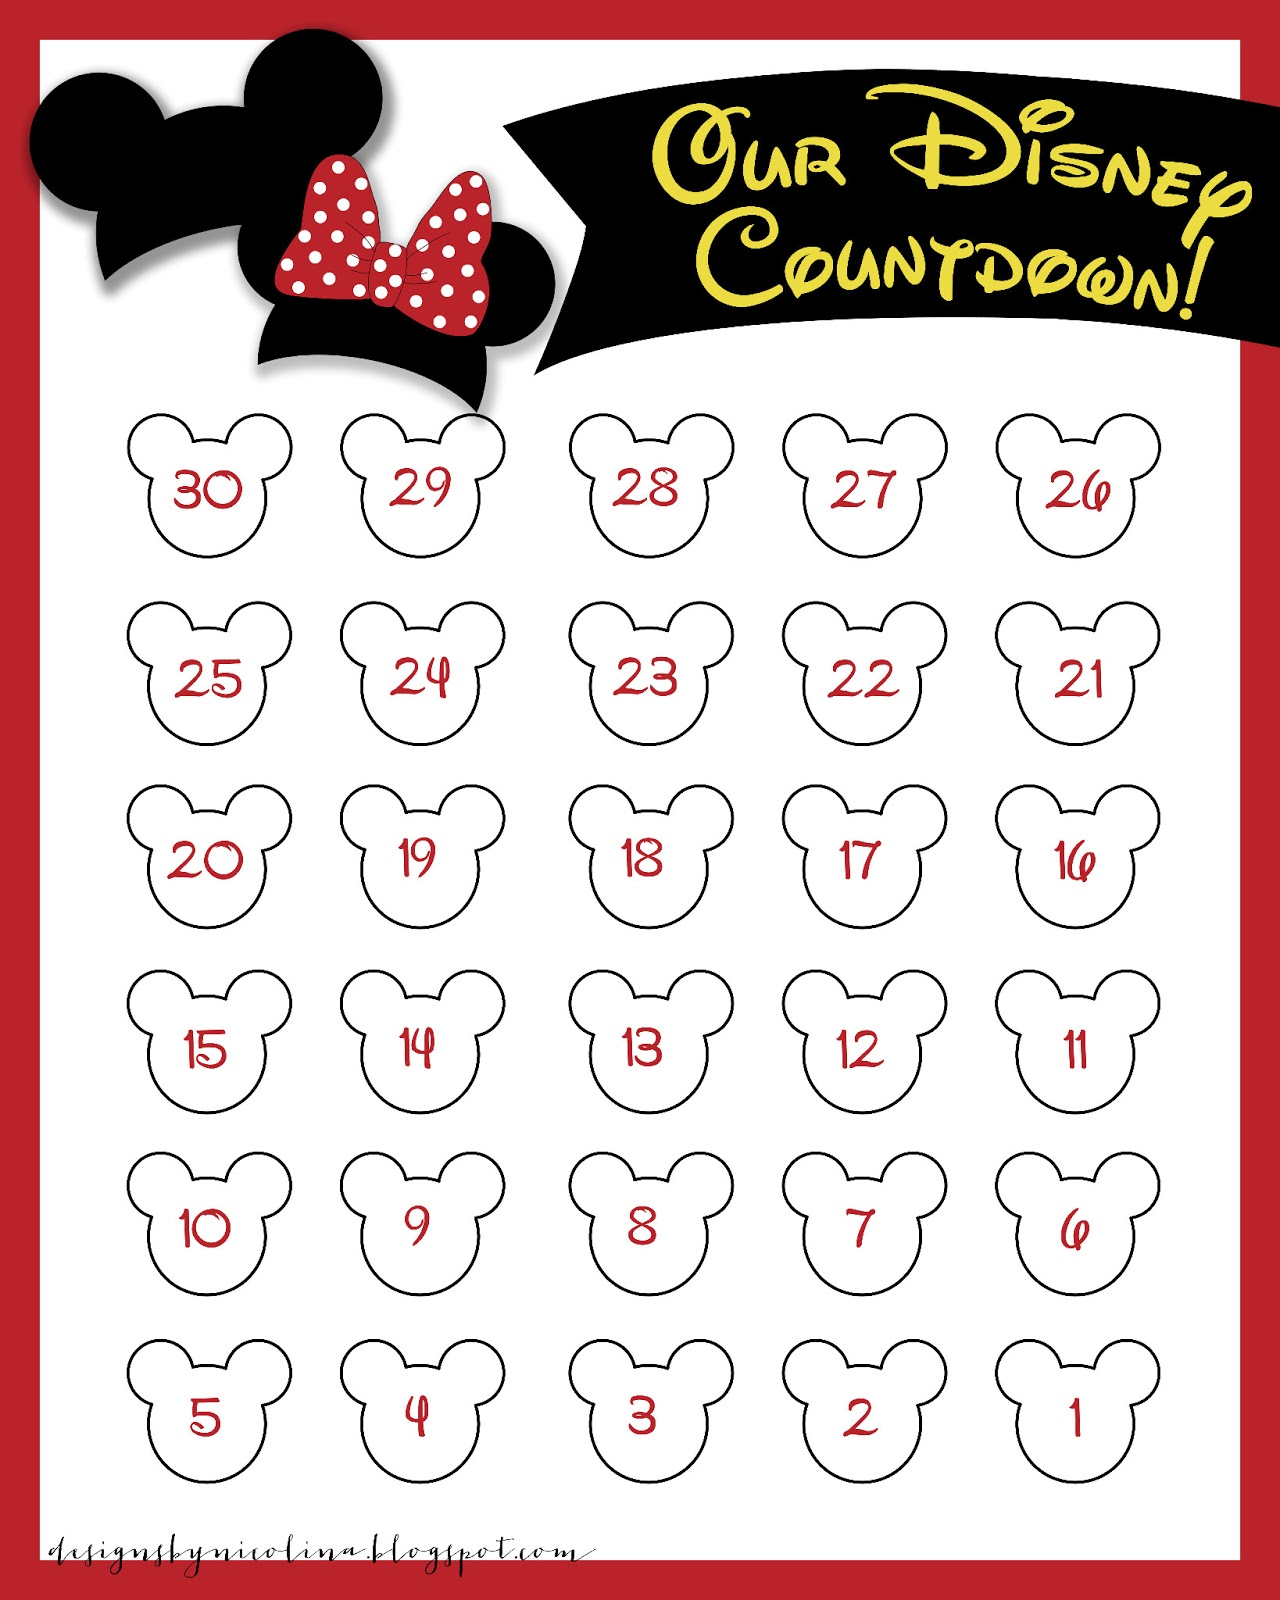 6 Images of Disney World Countdown Printable